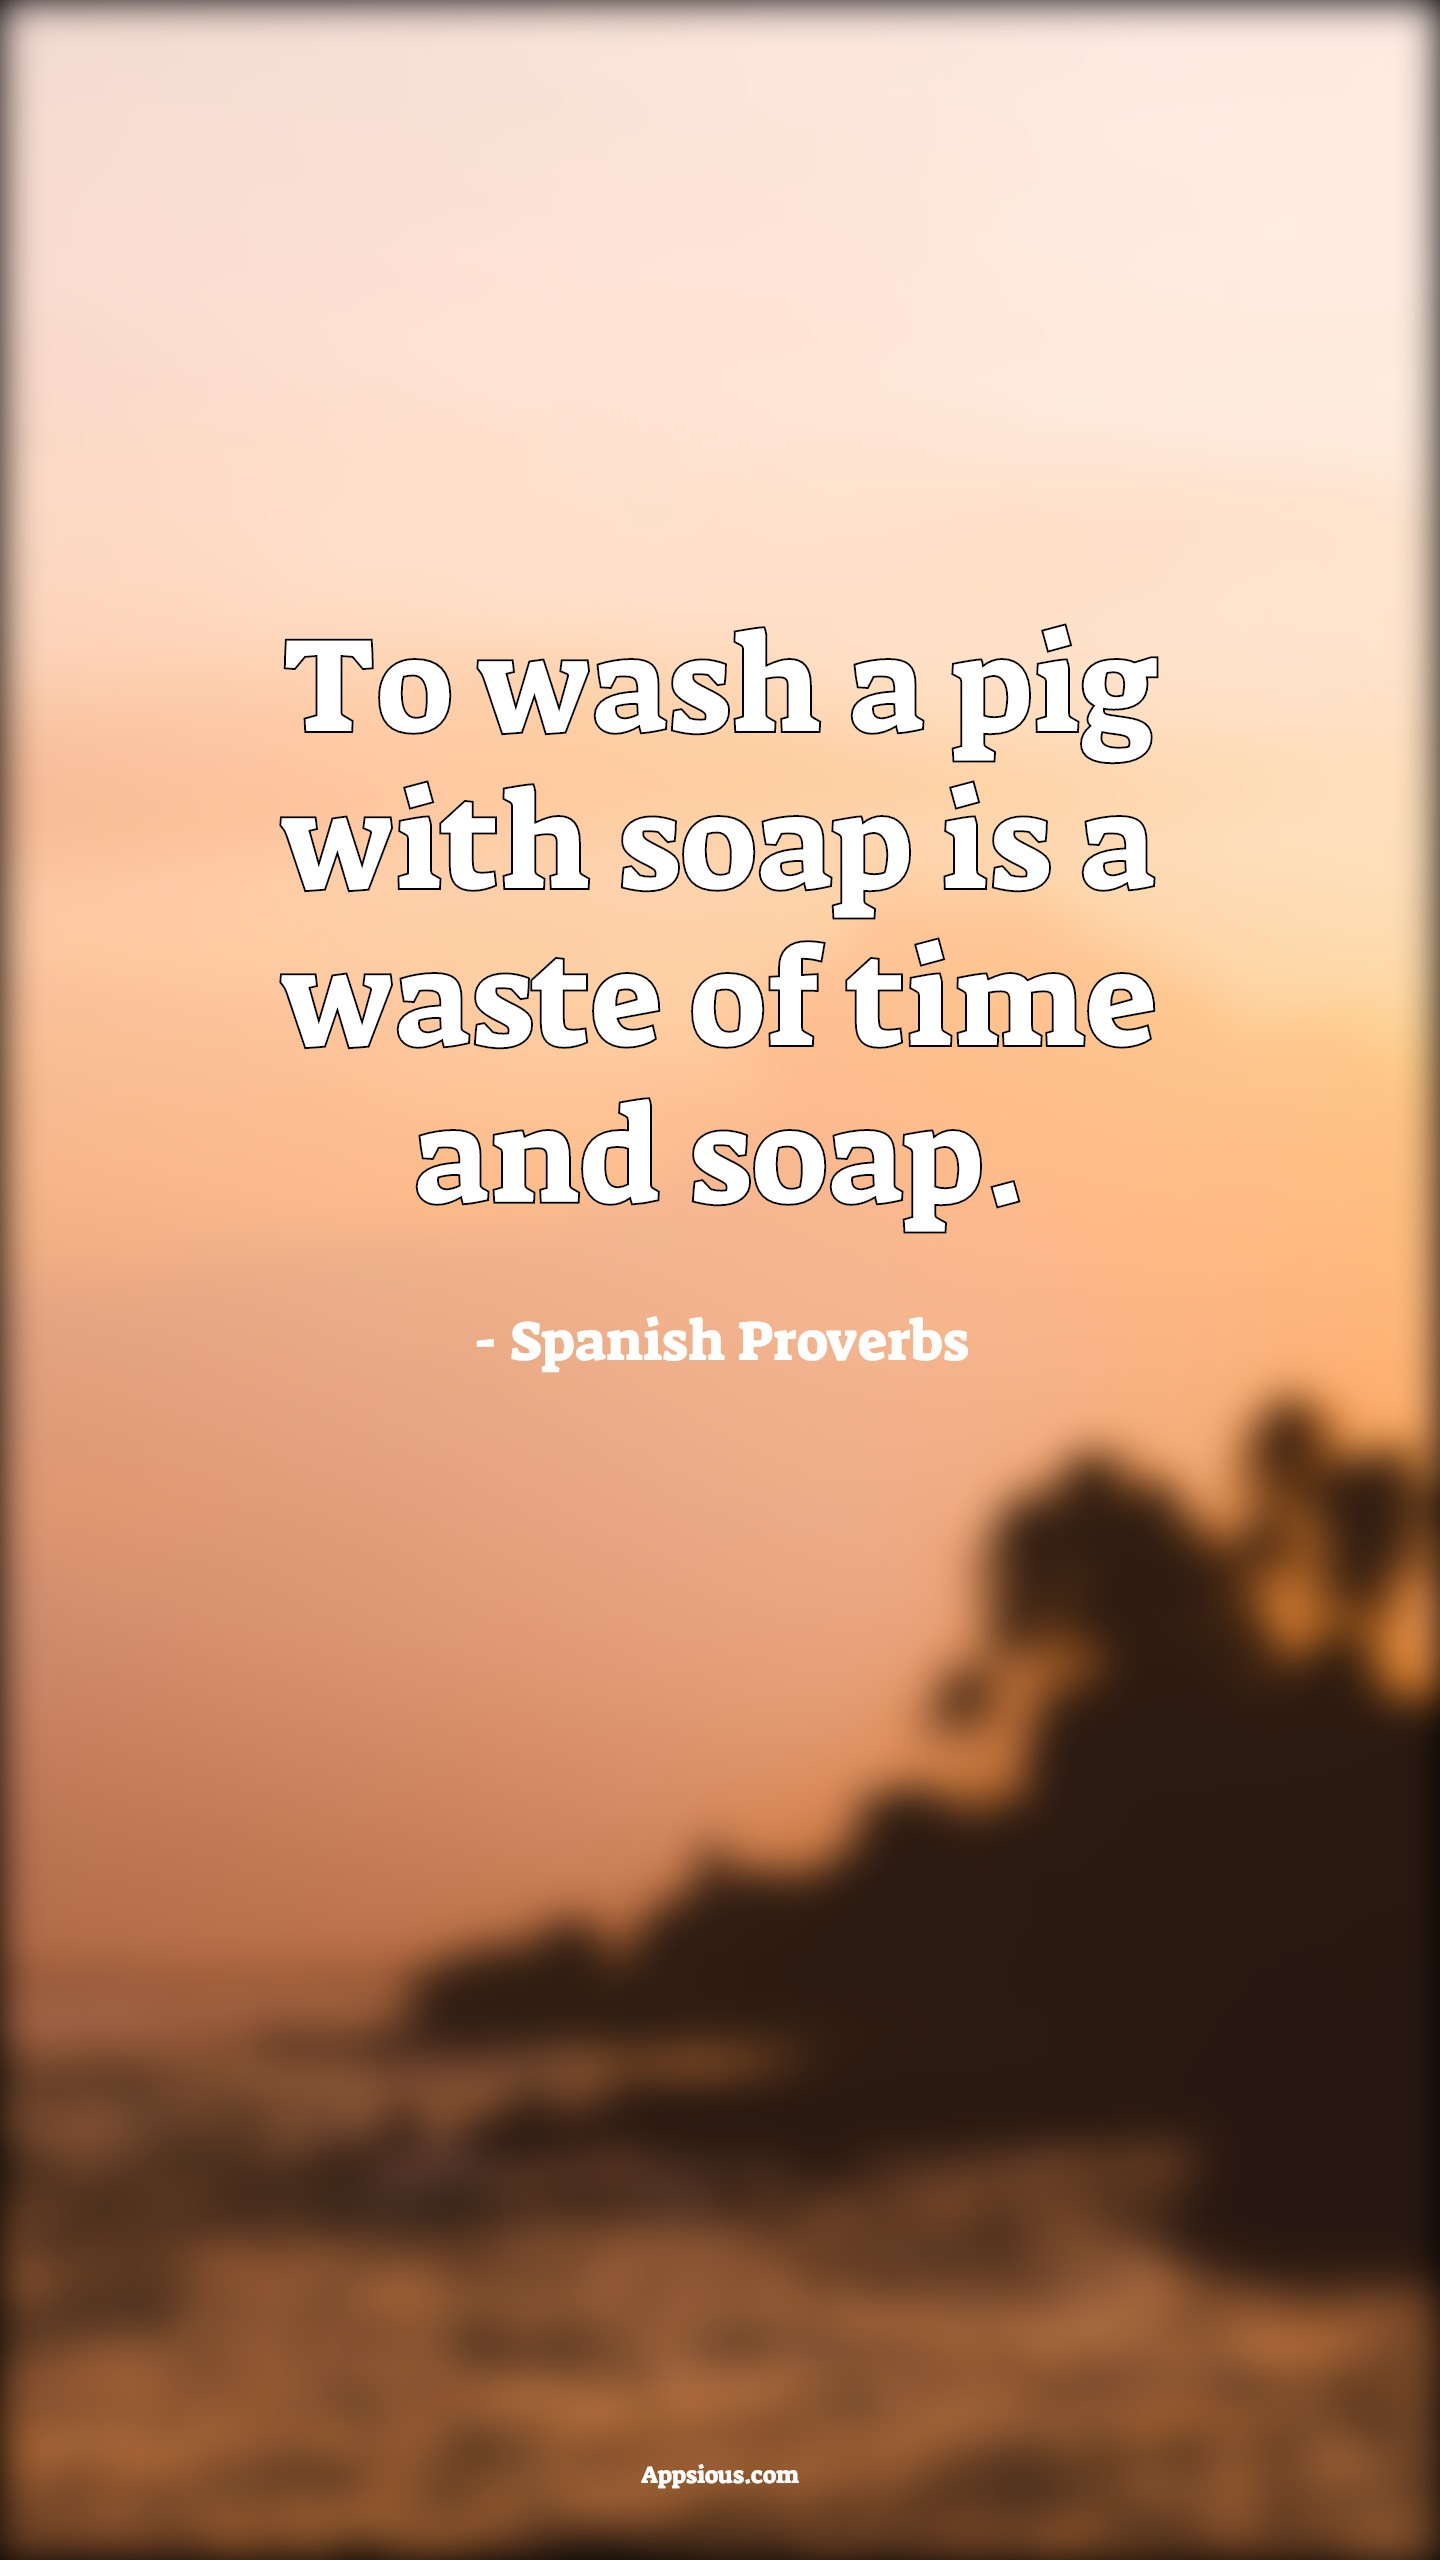 To wash a pig with soap is a waste of time and soap.